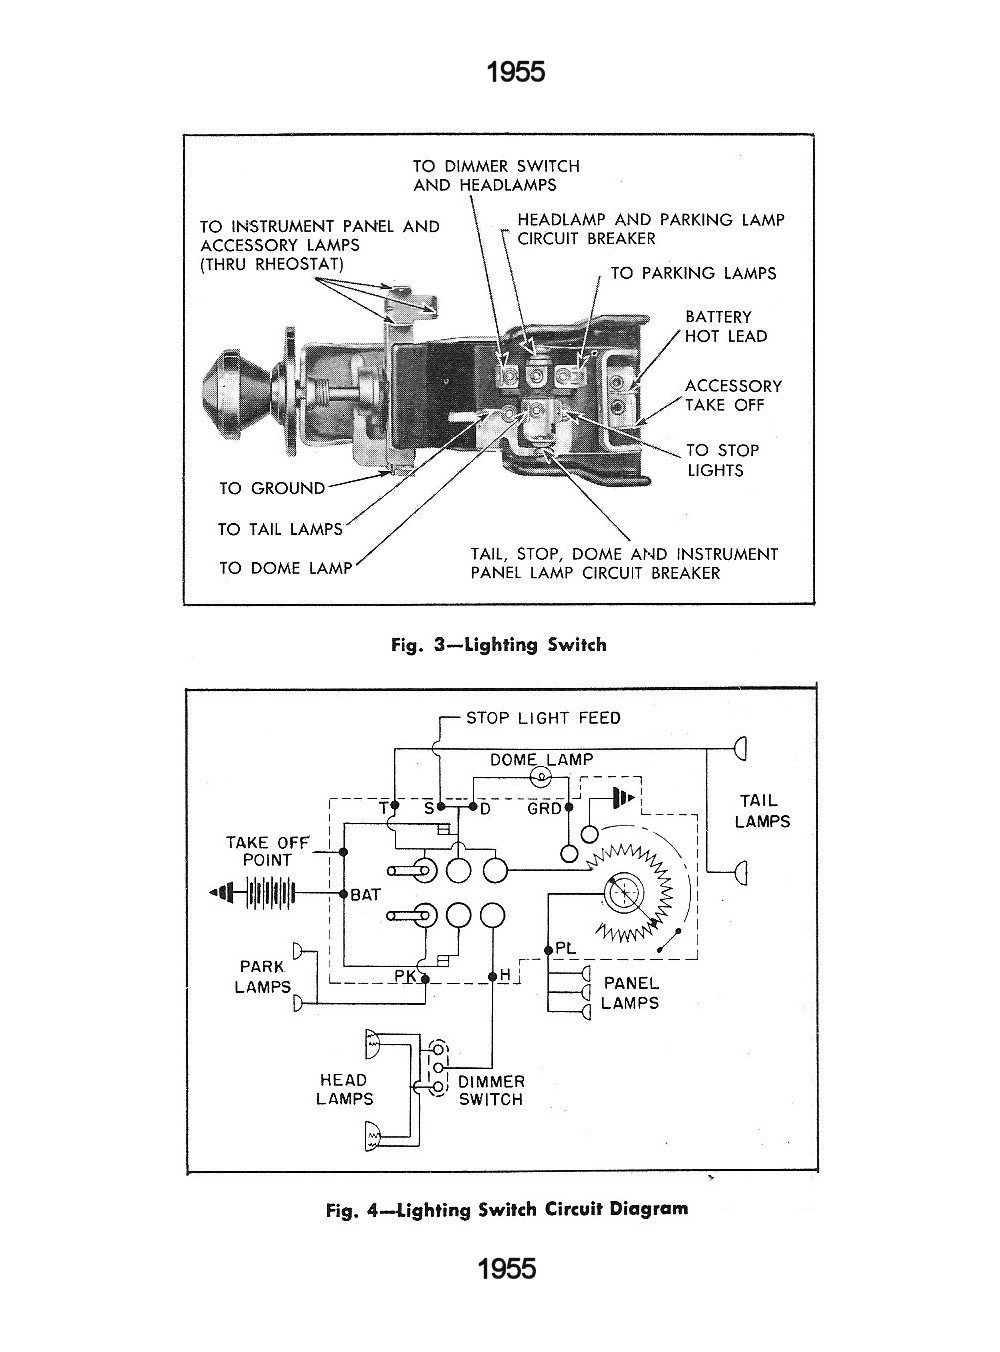 Headlight Switch Wiring Diagram Chevy Truck | Free Wiring ...